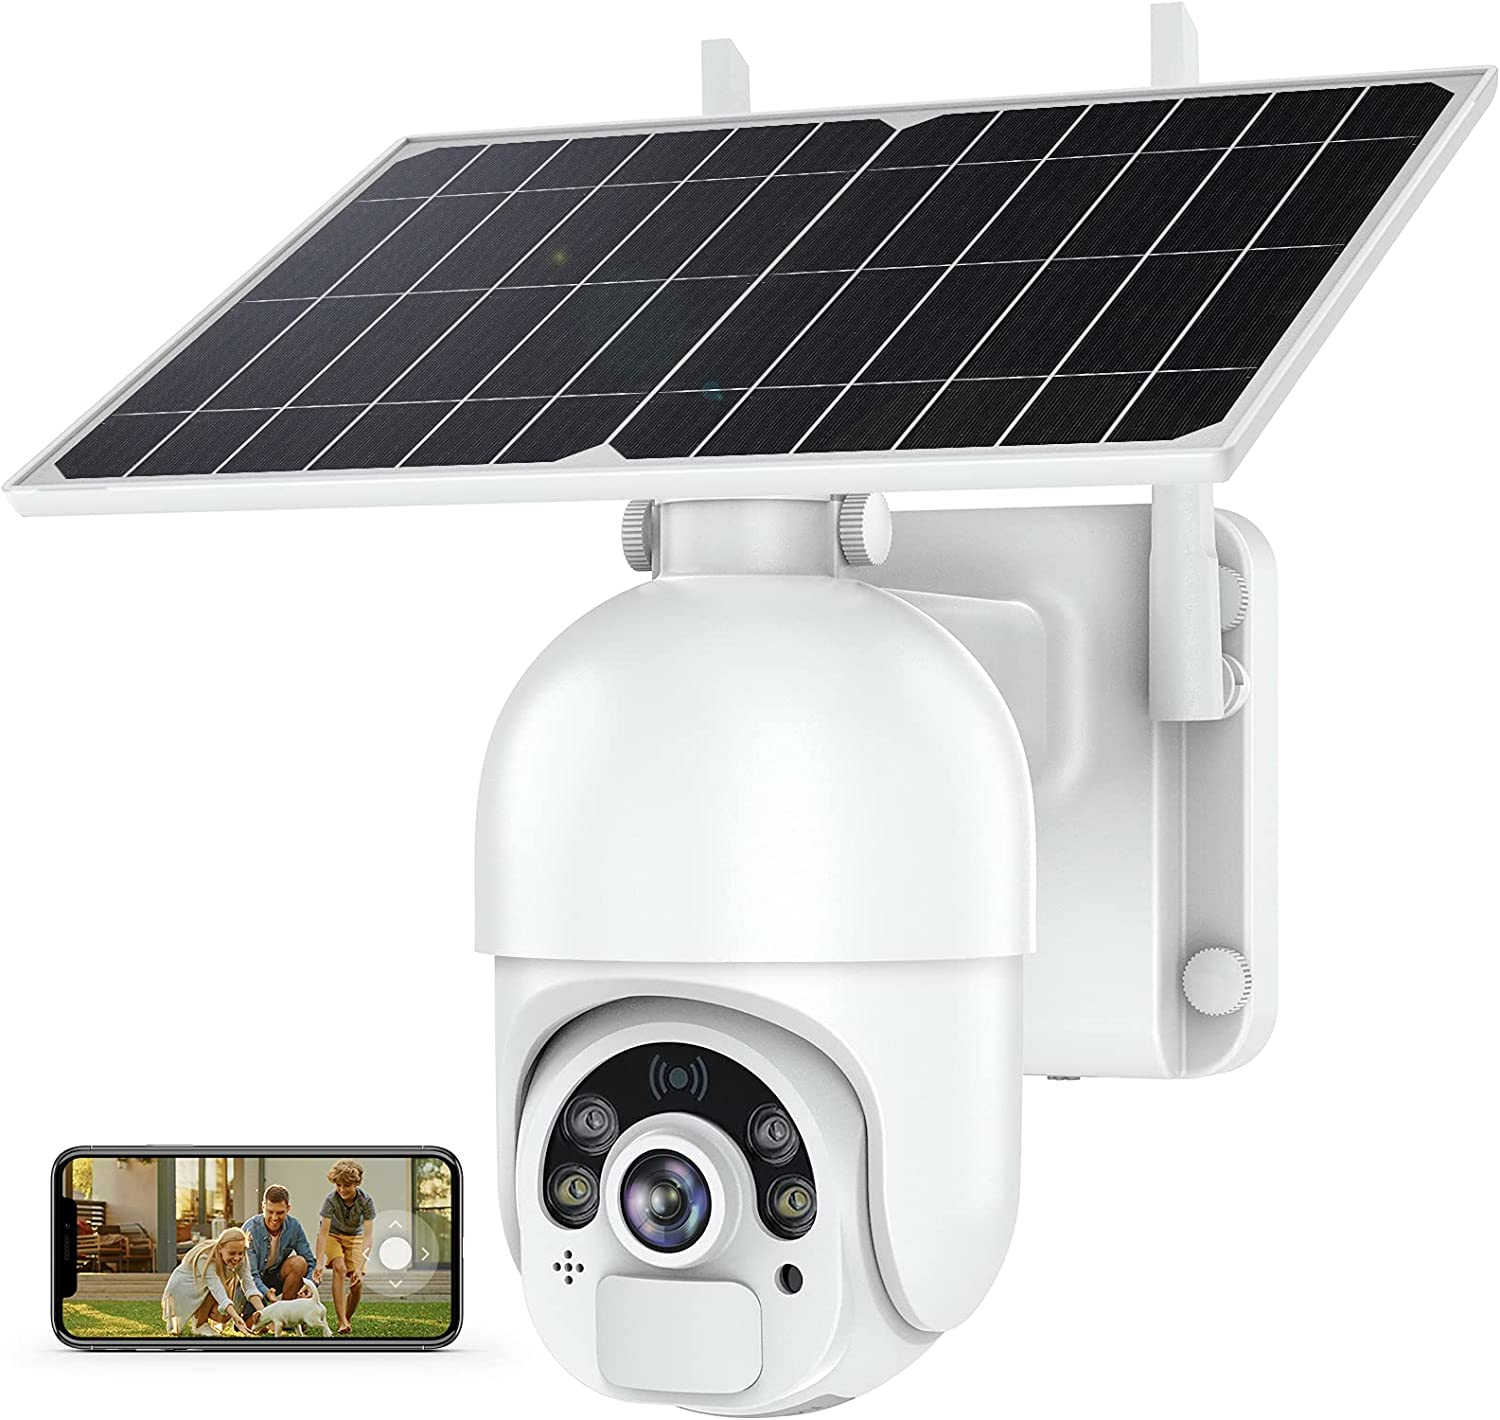 MPW Manufacturer direct delivery Solar Security Cameras Outdoor Wireless Trust 5dBi WiFi Antenna